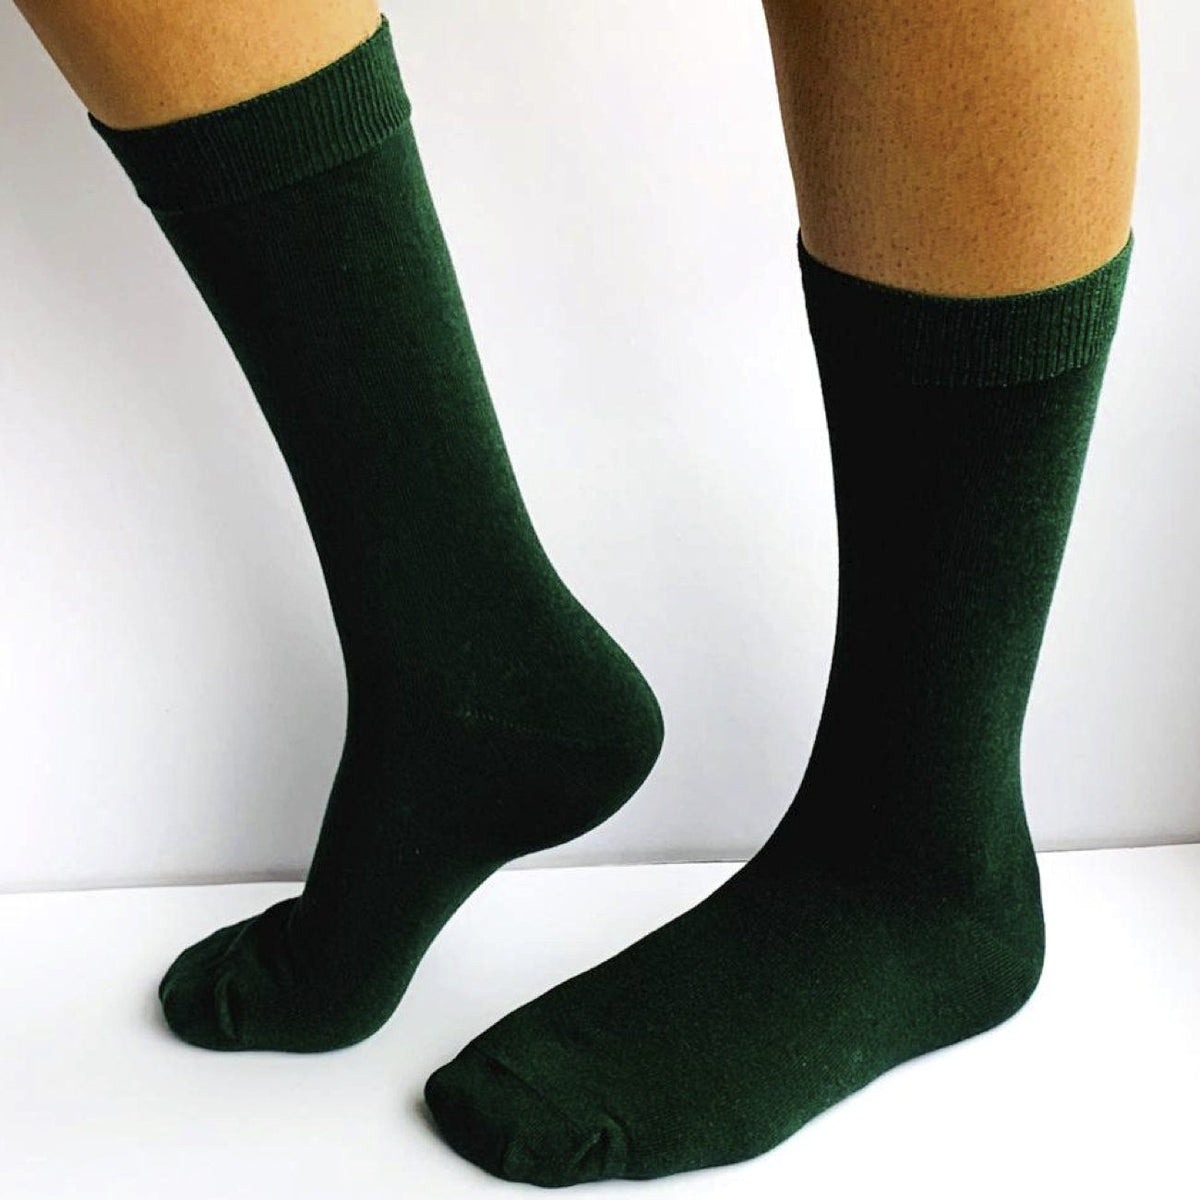 Dr Socks, 95% Cotton, 5% Elastane, Loose top, No Toe Seam, Green